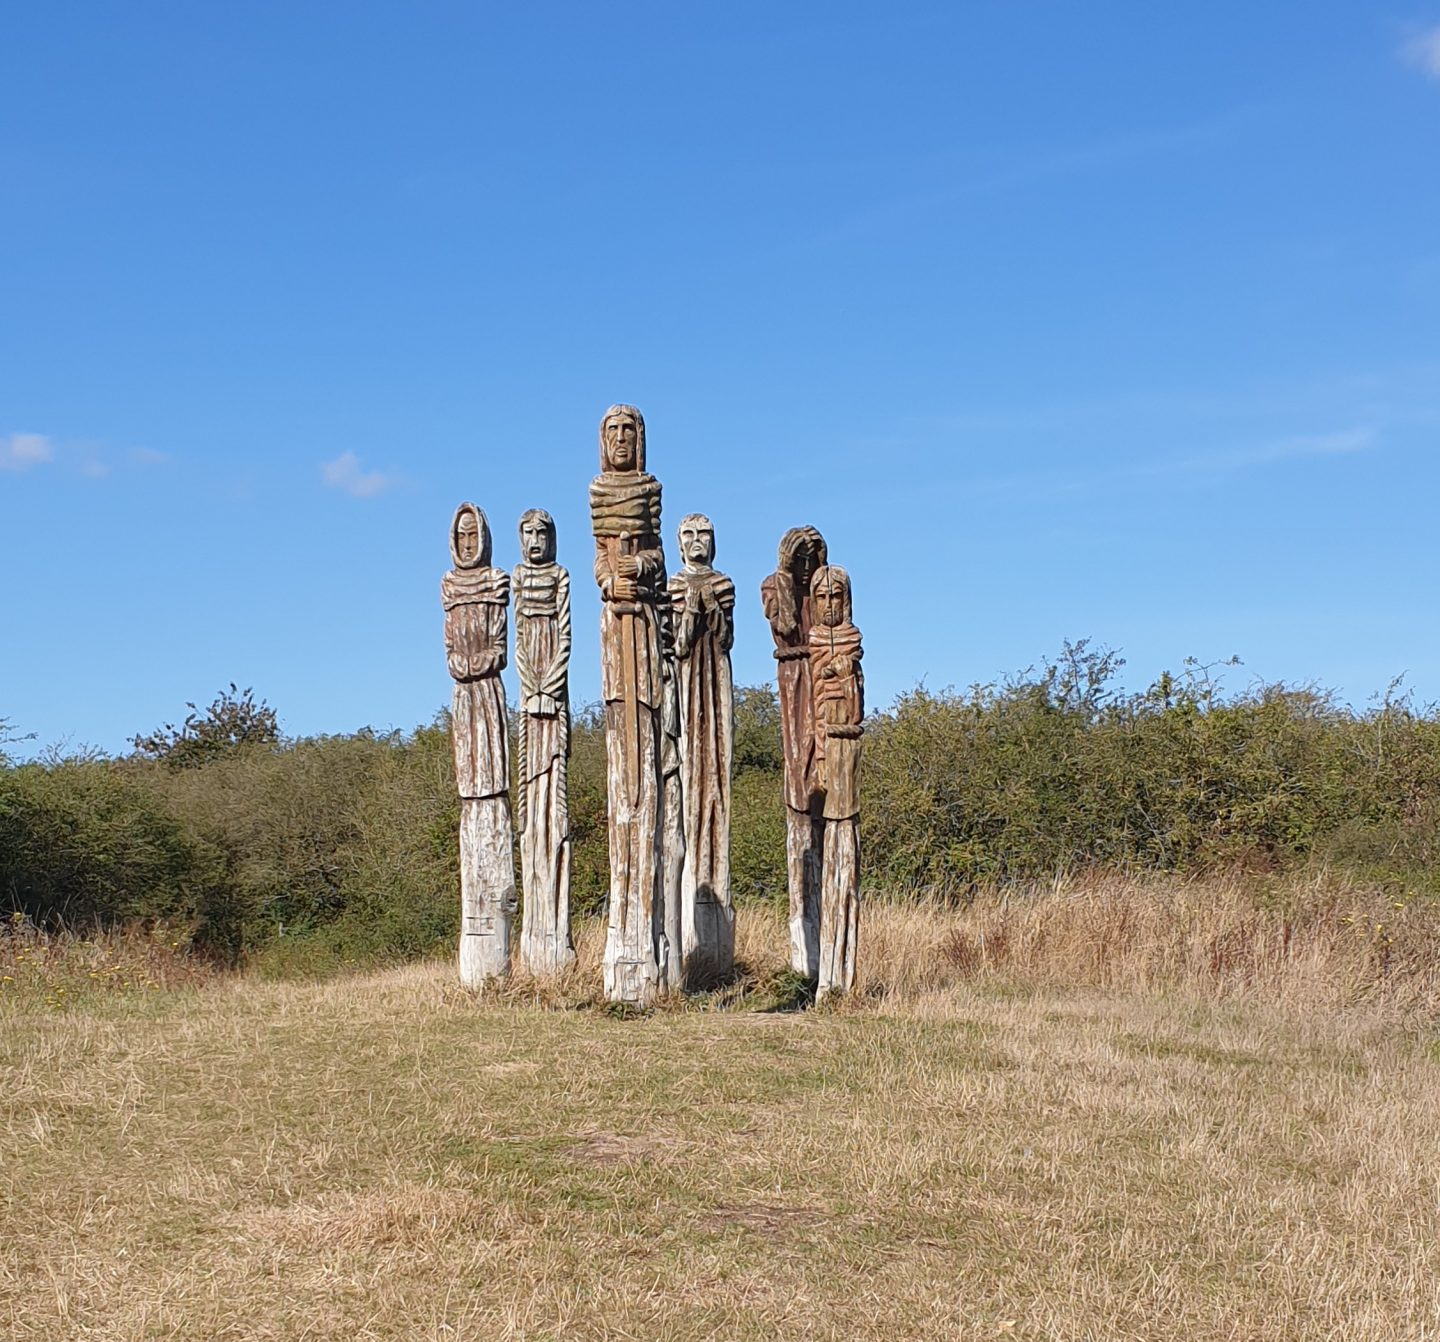 Wooden sculptures at Wat Tyler Country Park in Essex